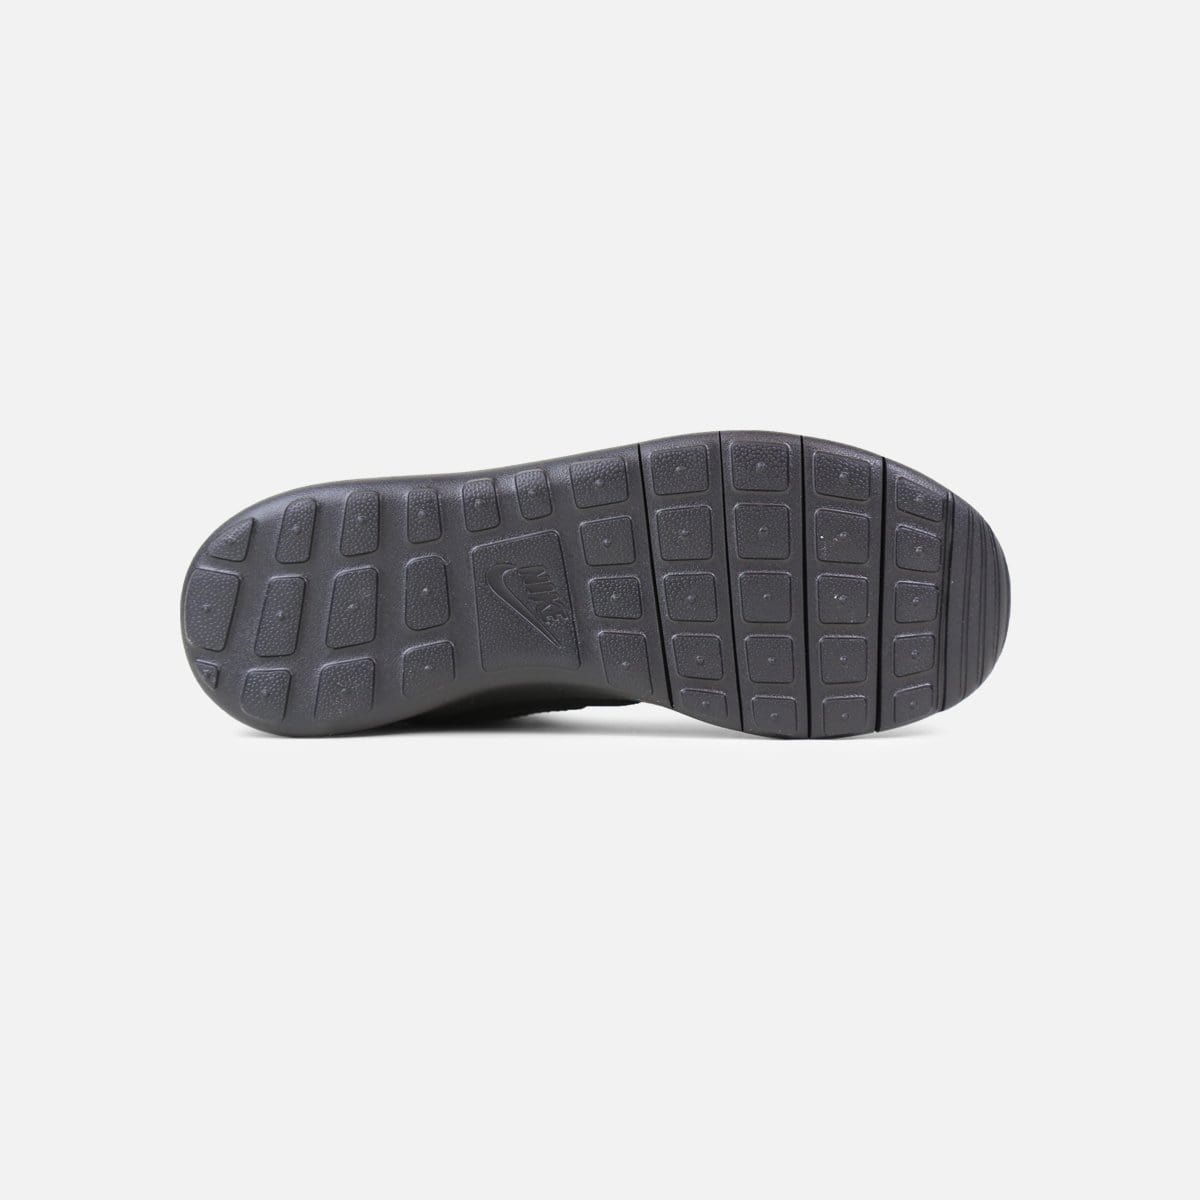 Nike Roshe One Pre-School (Black/Black)